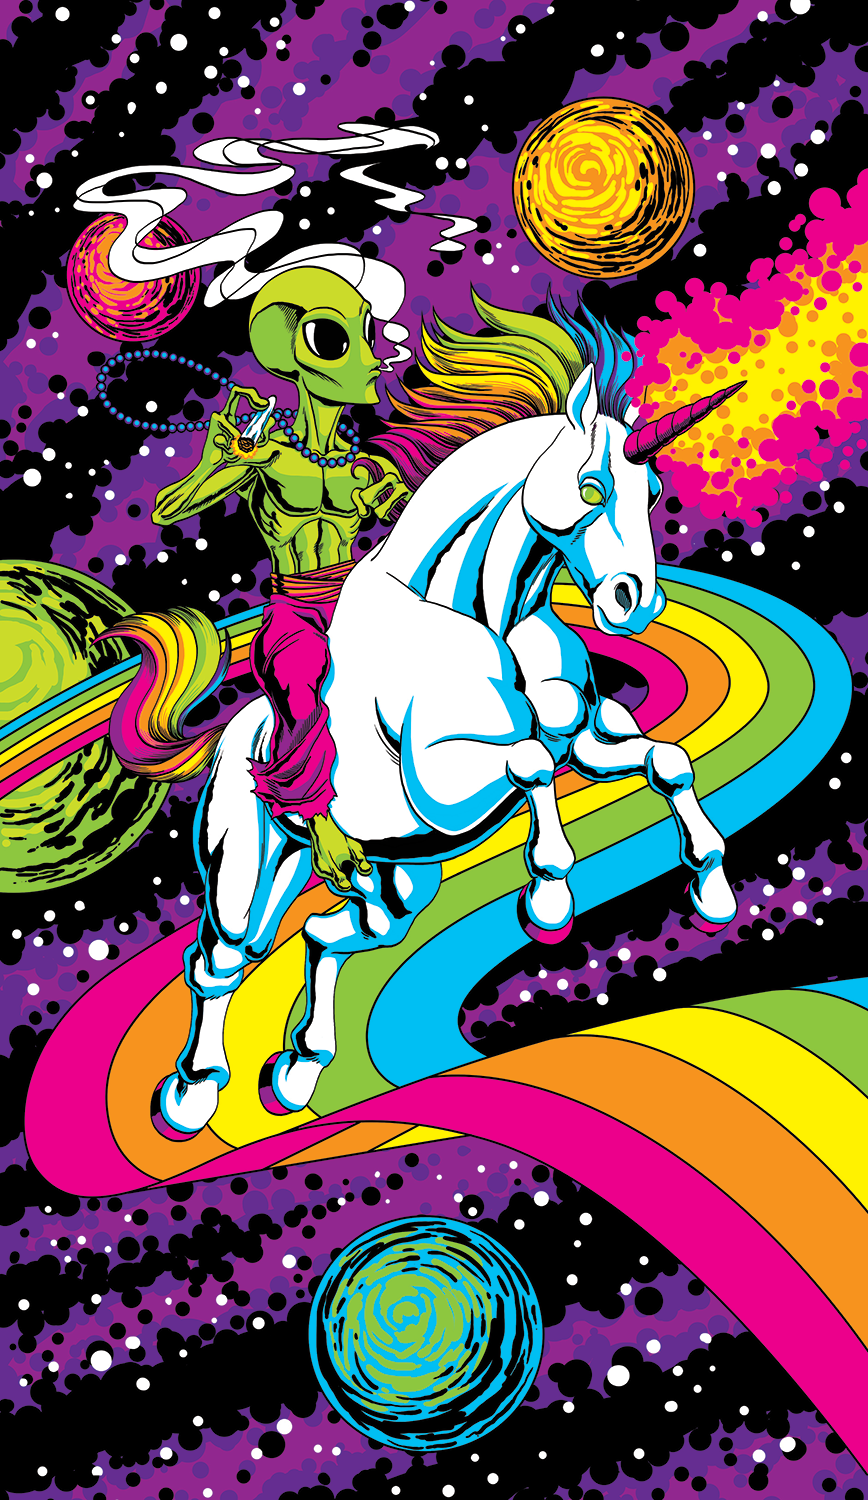 Rainbow Unicorn Rider